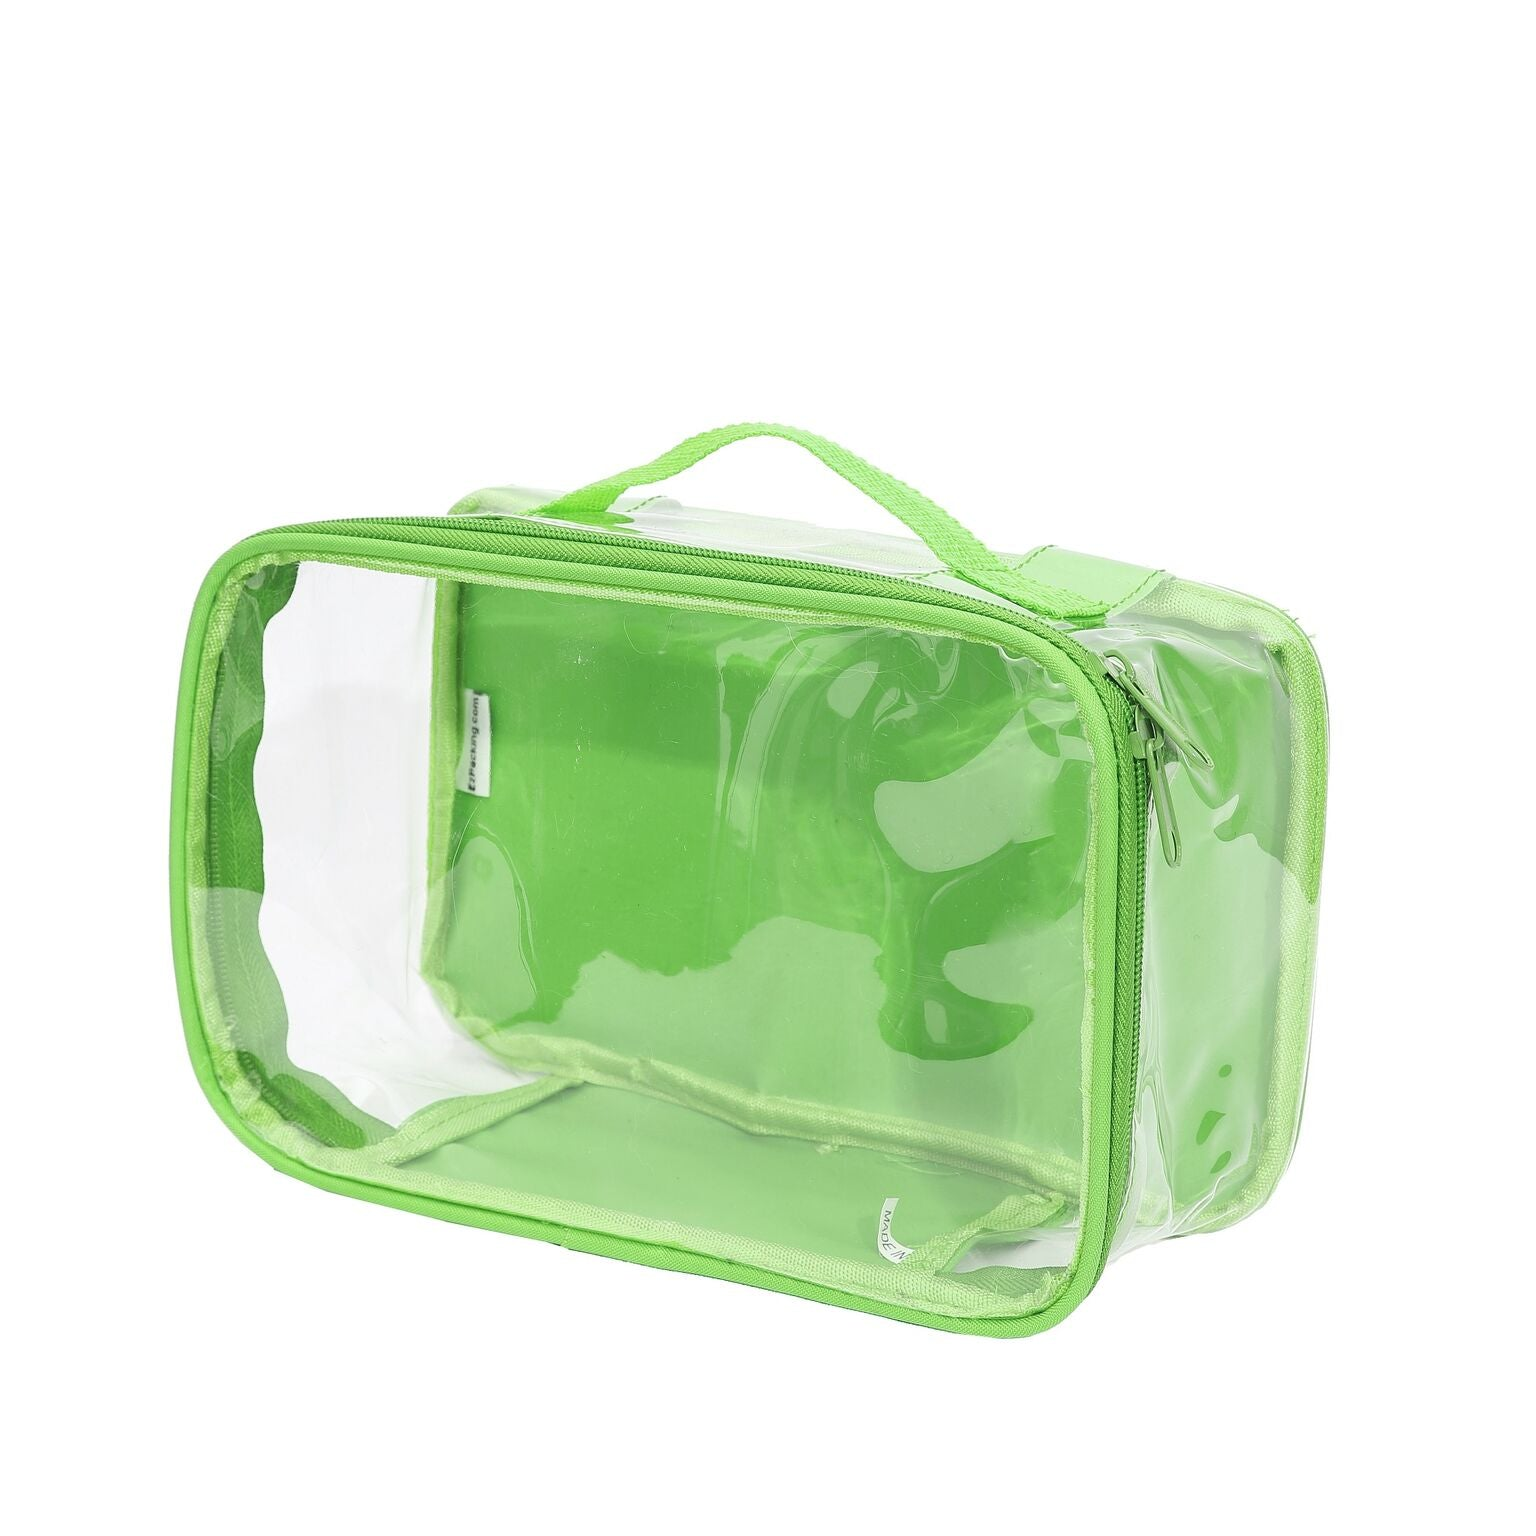 EzPacking green clear makeup bag